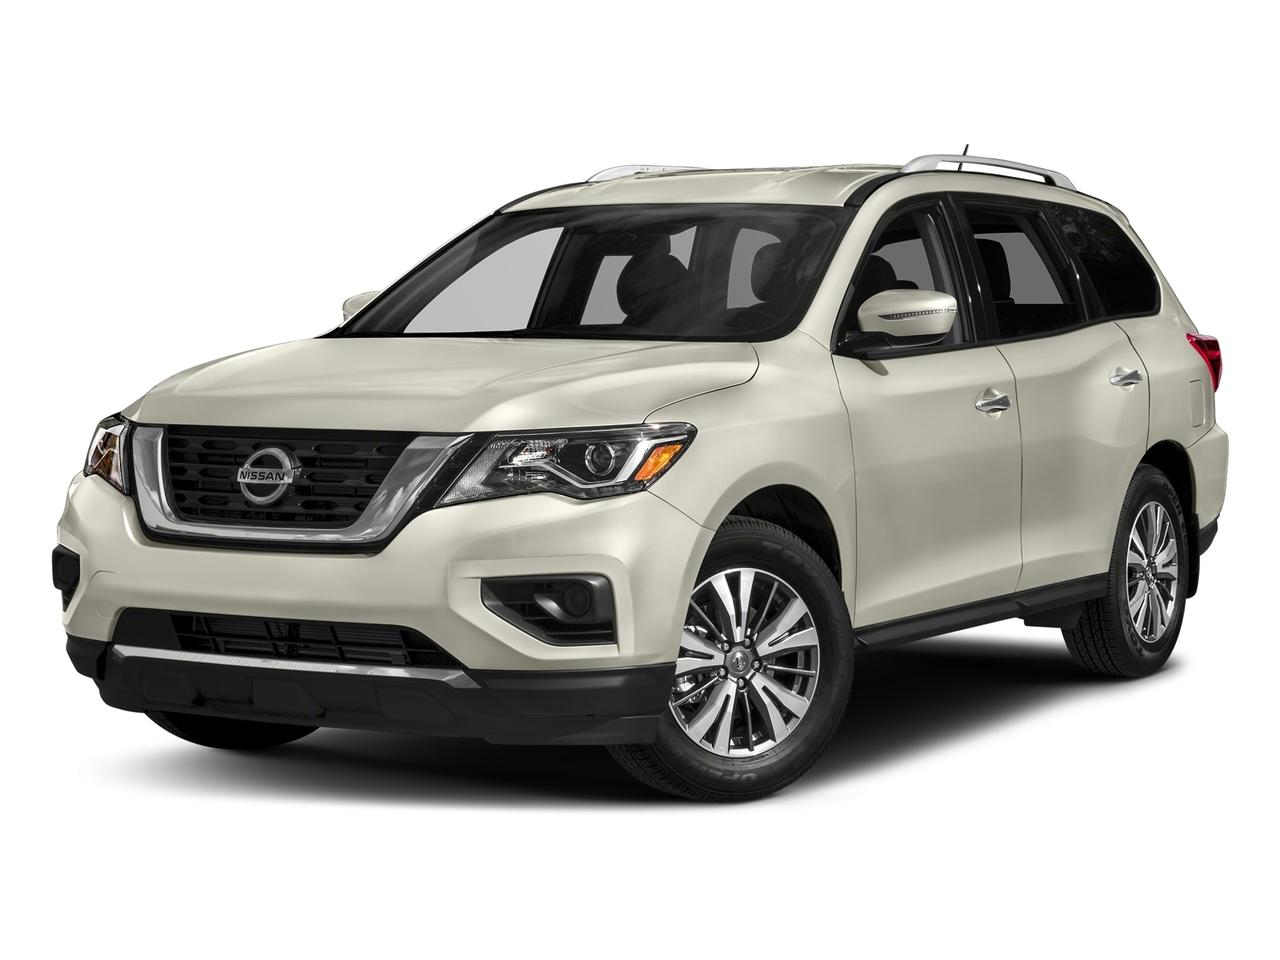 2017 Nissan Pathfinder Vehicle Photo in San Antonio, TX 78257